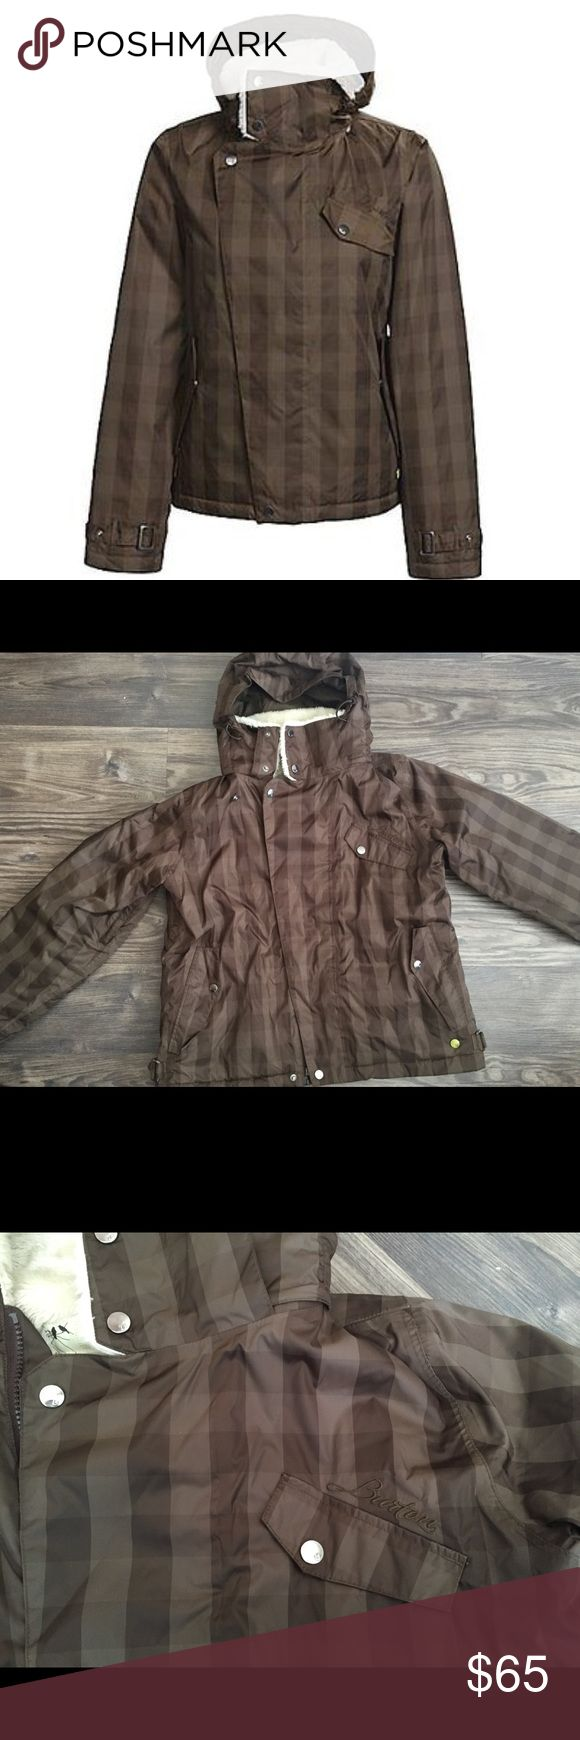 Burton snowboard jacket Nylon Faux fur Storm-lite 3.0-E custom woven plaid fabric Fully taped seams Faux fur lining and collar Sound pocket with headphone cable port Removerable contour hood *This is a stunning snowboard jacket No flaws and good condition Burton Jackets & Coats Puffers